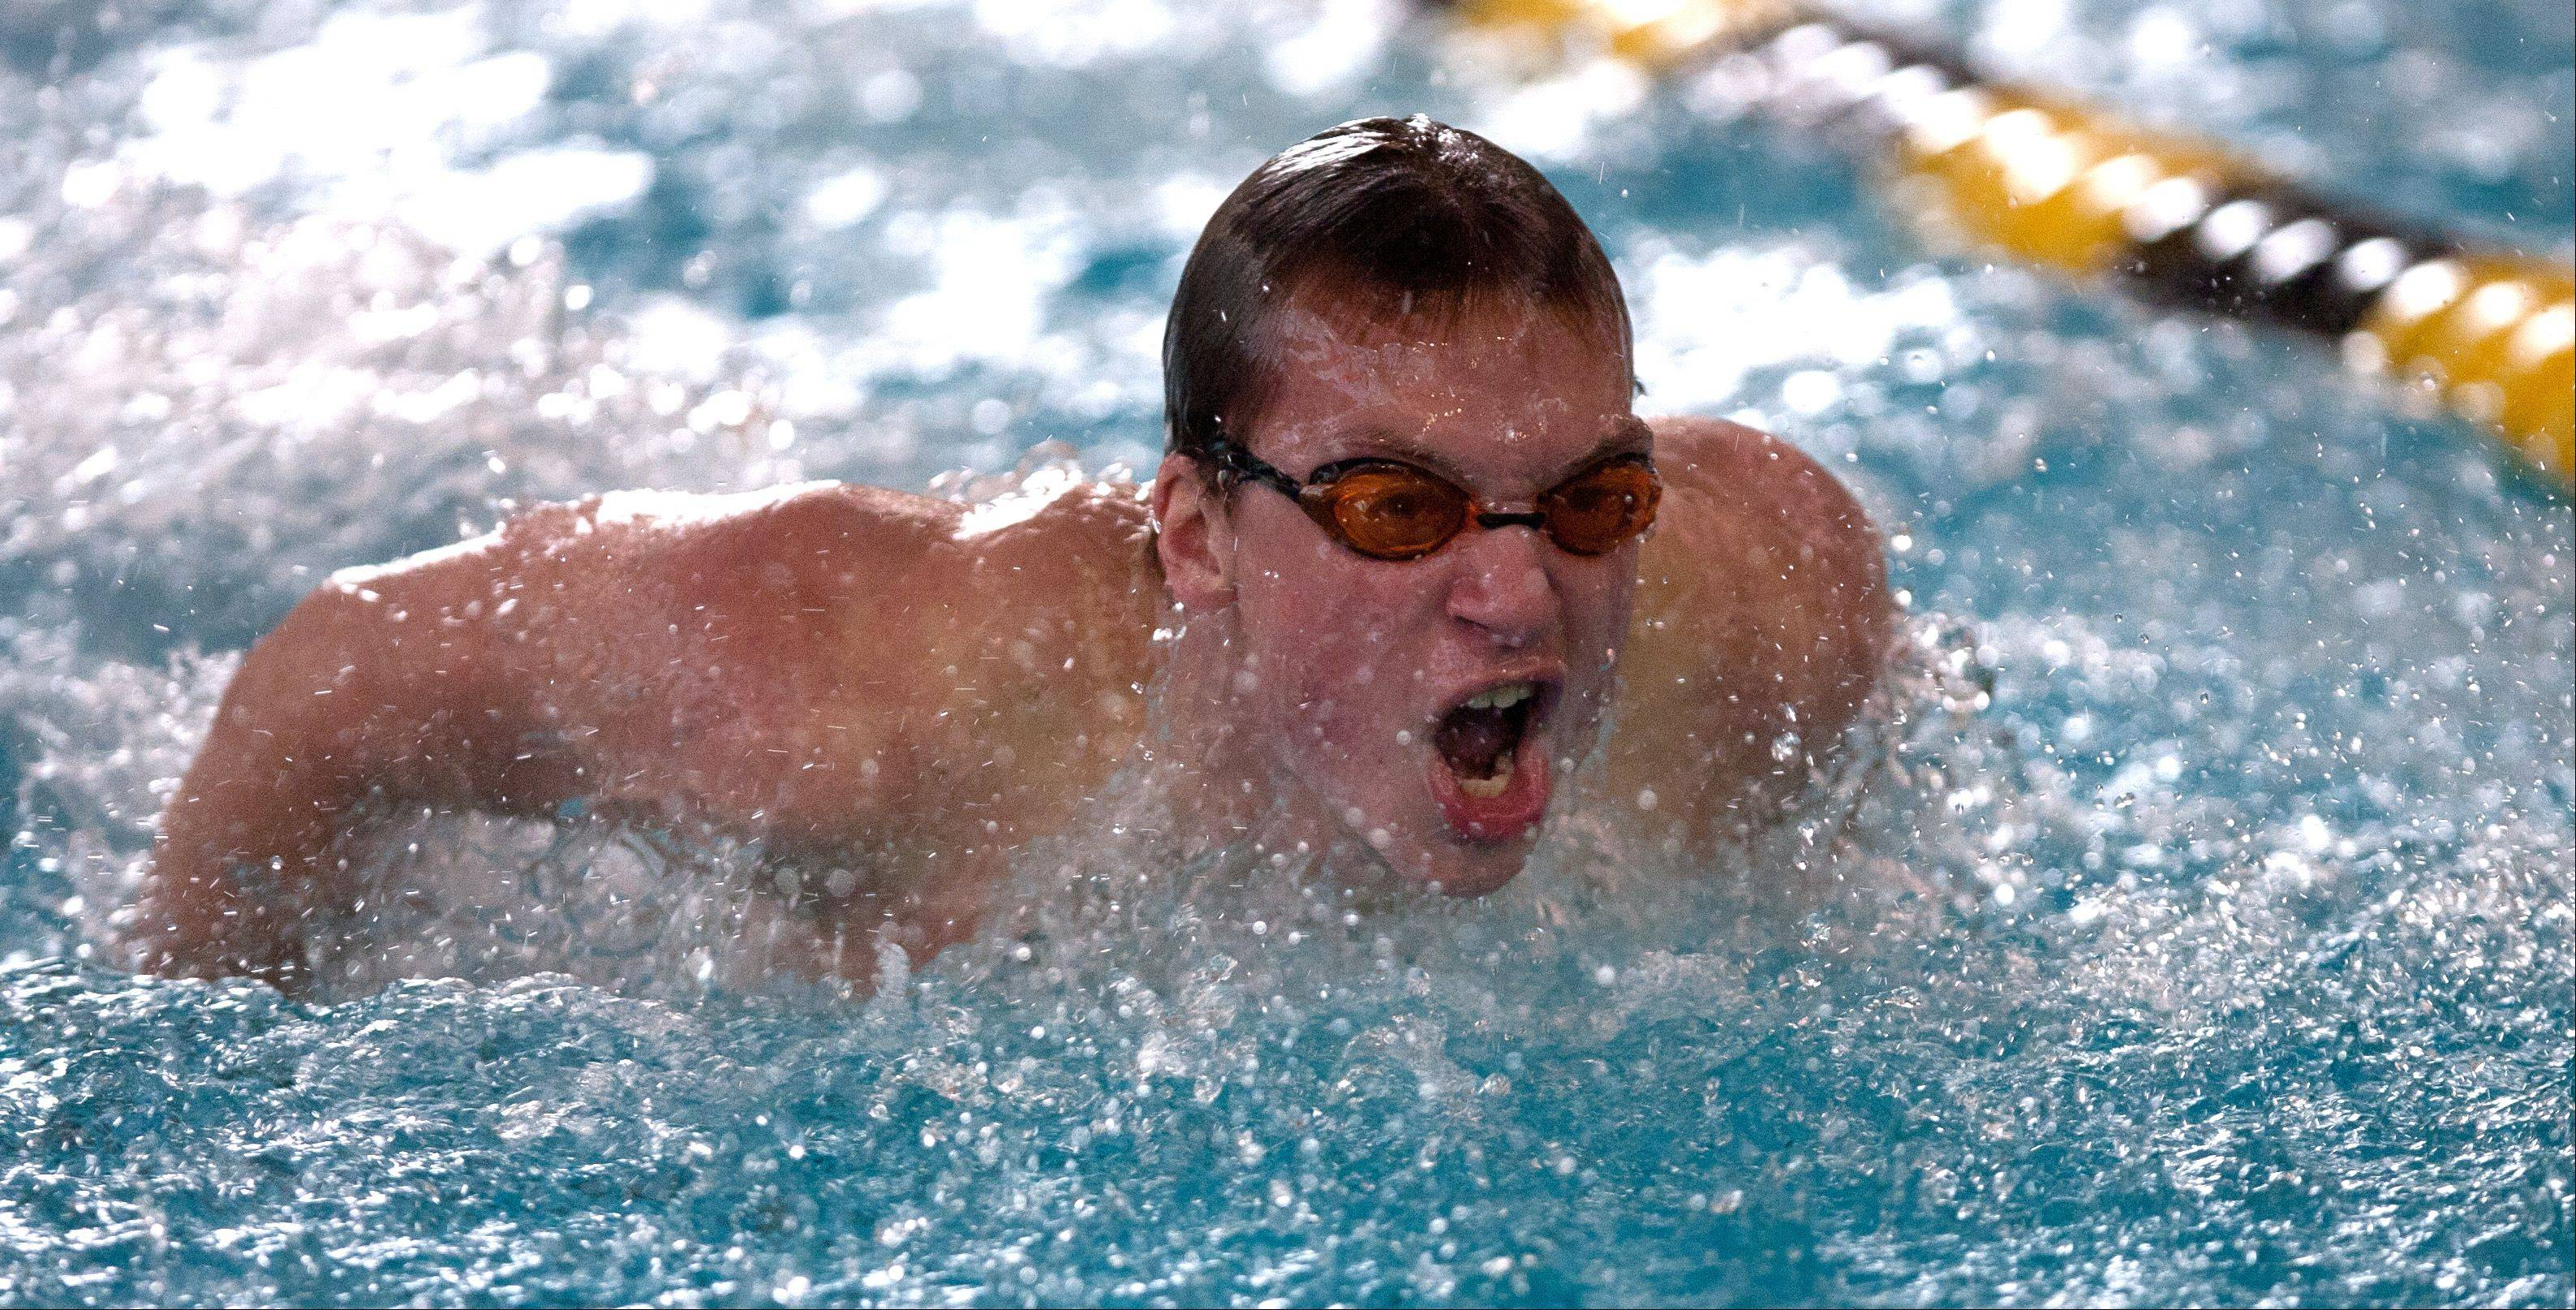 Kelvin Newton of Waubonsie Valley High School swims the 100 yard butterfly at the Mustang Swim and Dive Invite, hosted by Metea Valley High School.